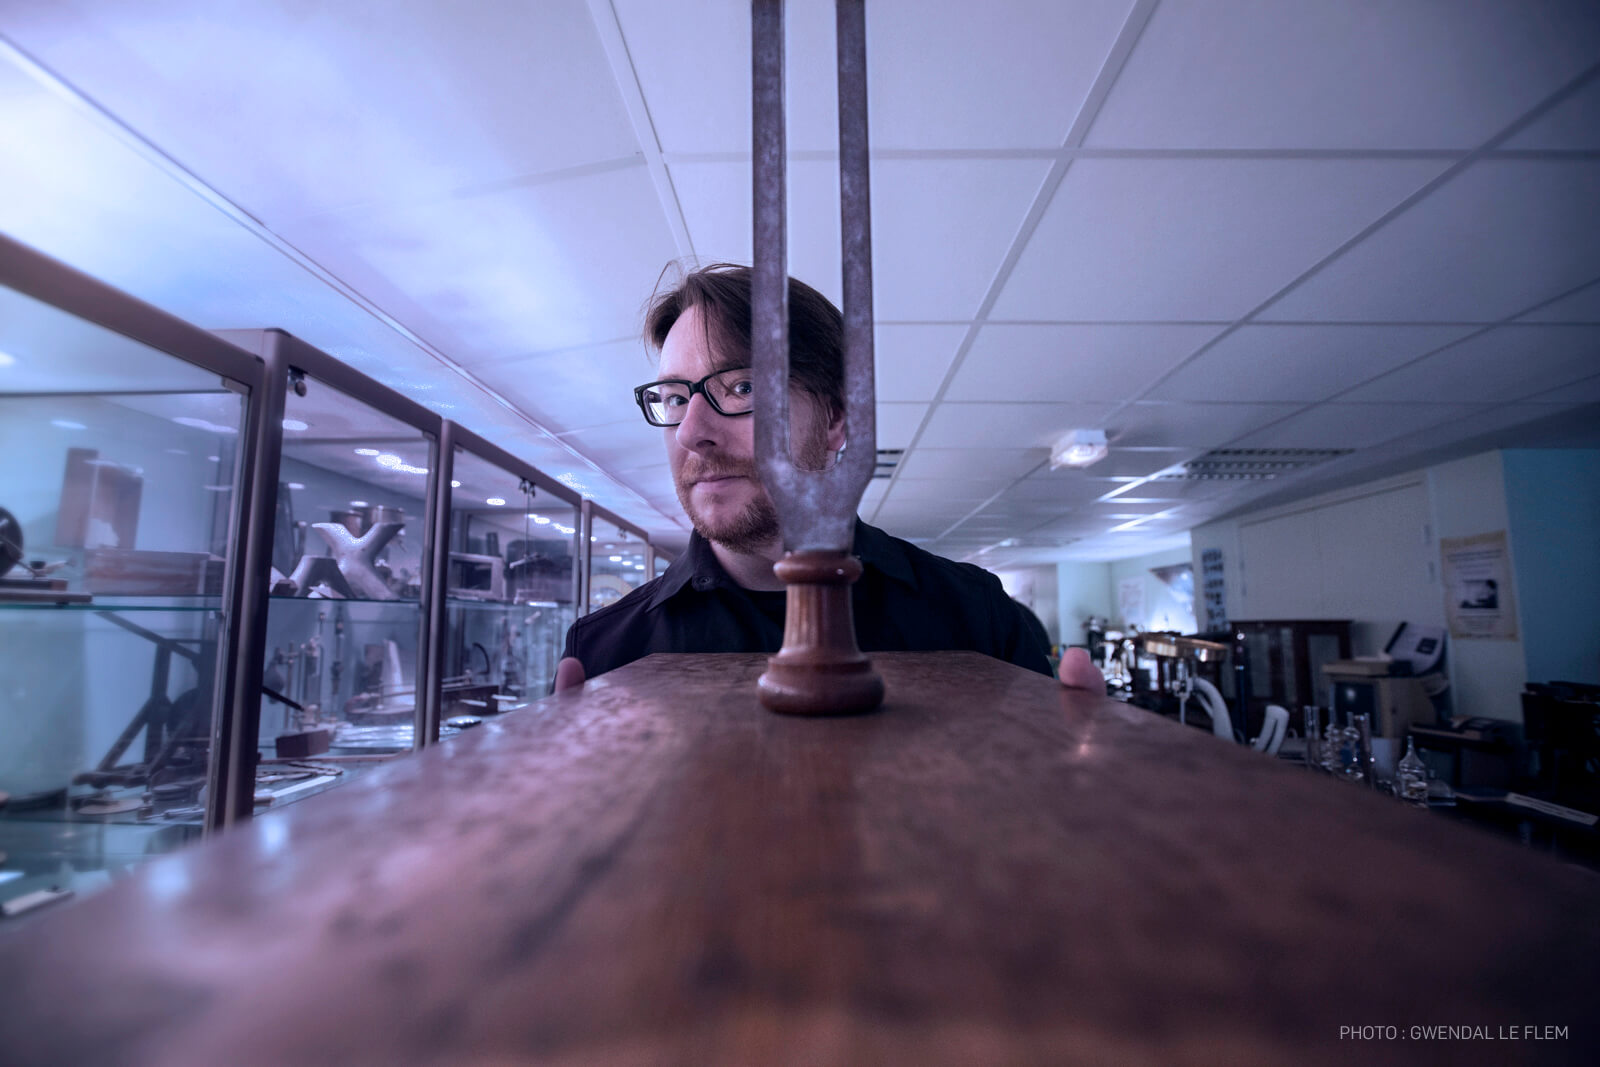 Composer and producer of electronic music, Nicolas Bernier, standing behind a tuning fork which is on a table.